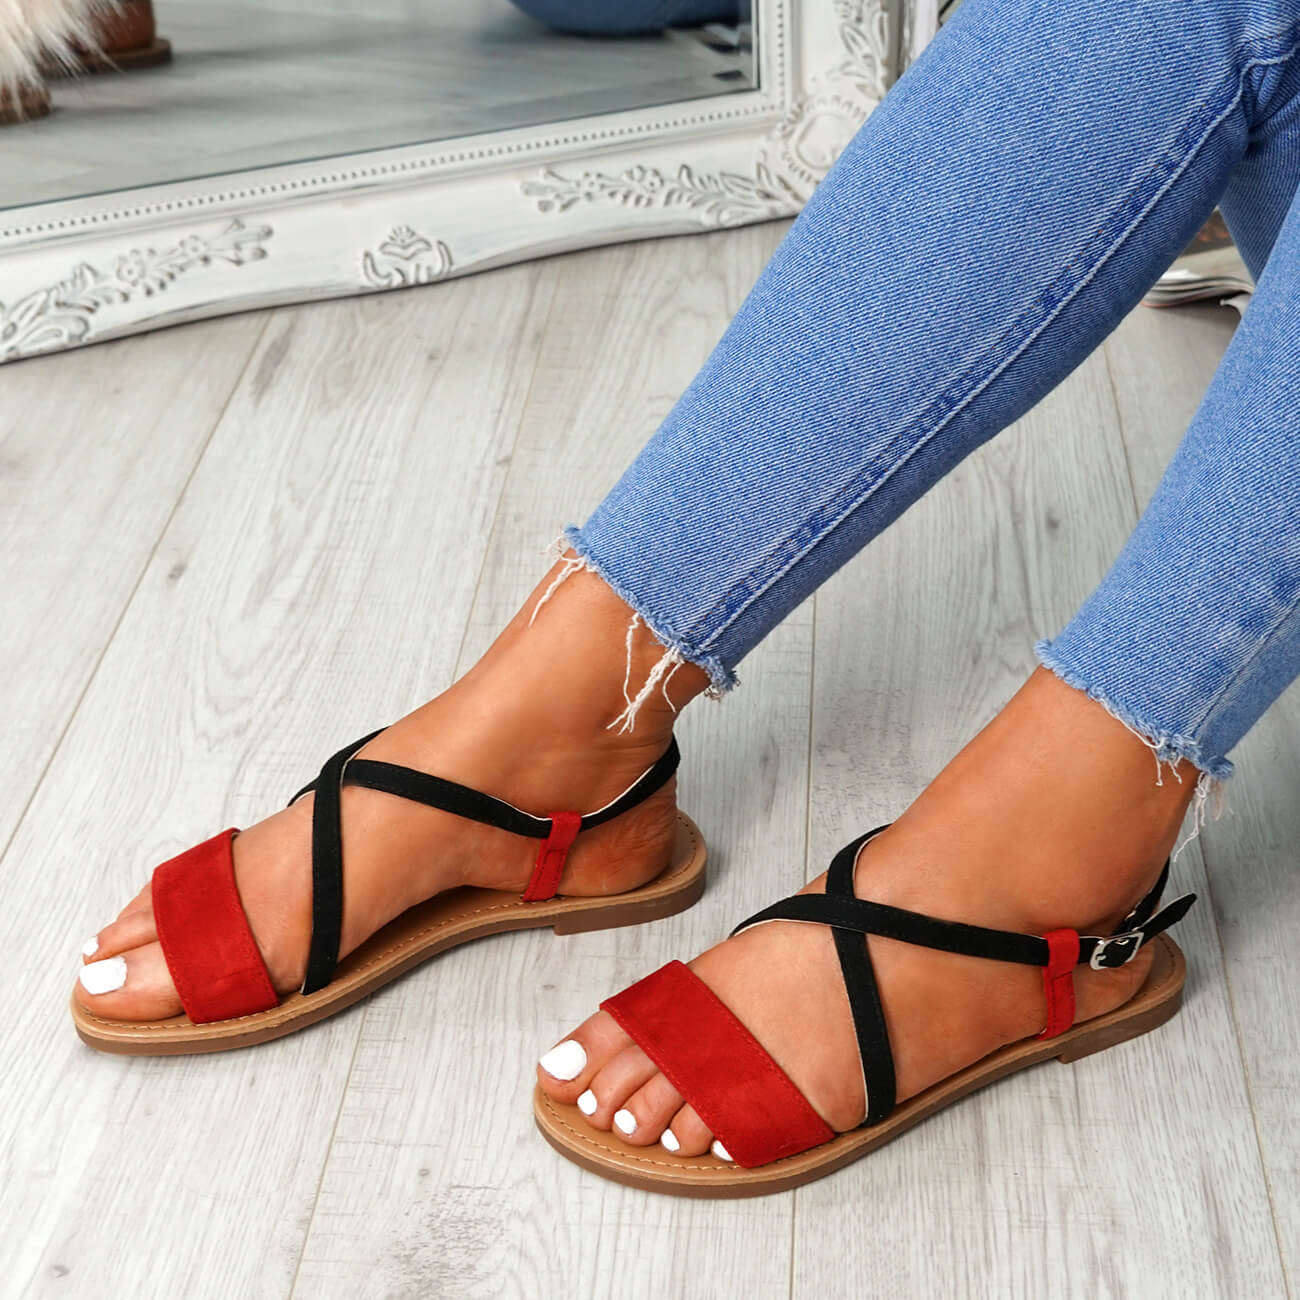 WOMENS-LADIES-ANKLE-STRAP-PEEP-TOE-FLAT-SANDALS-COMFY-SUMMER-SHOES-SIZE thumbnail 19